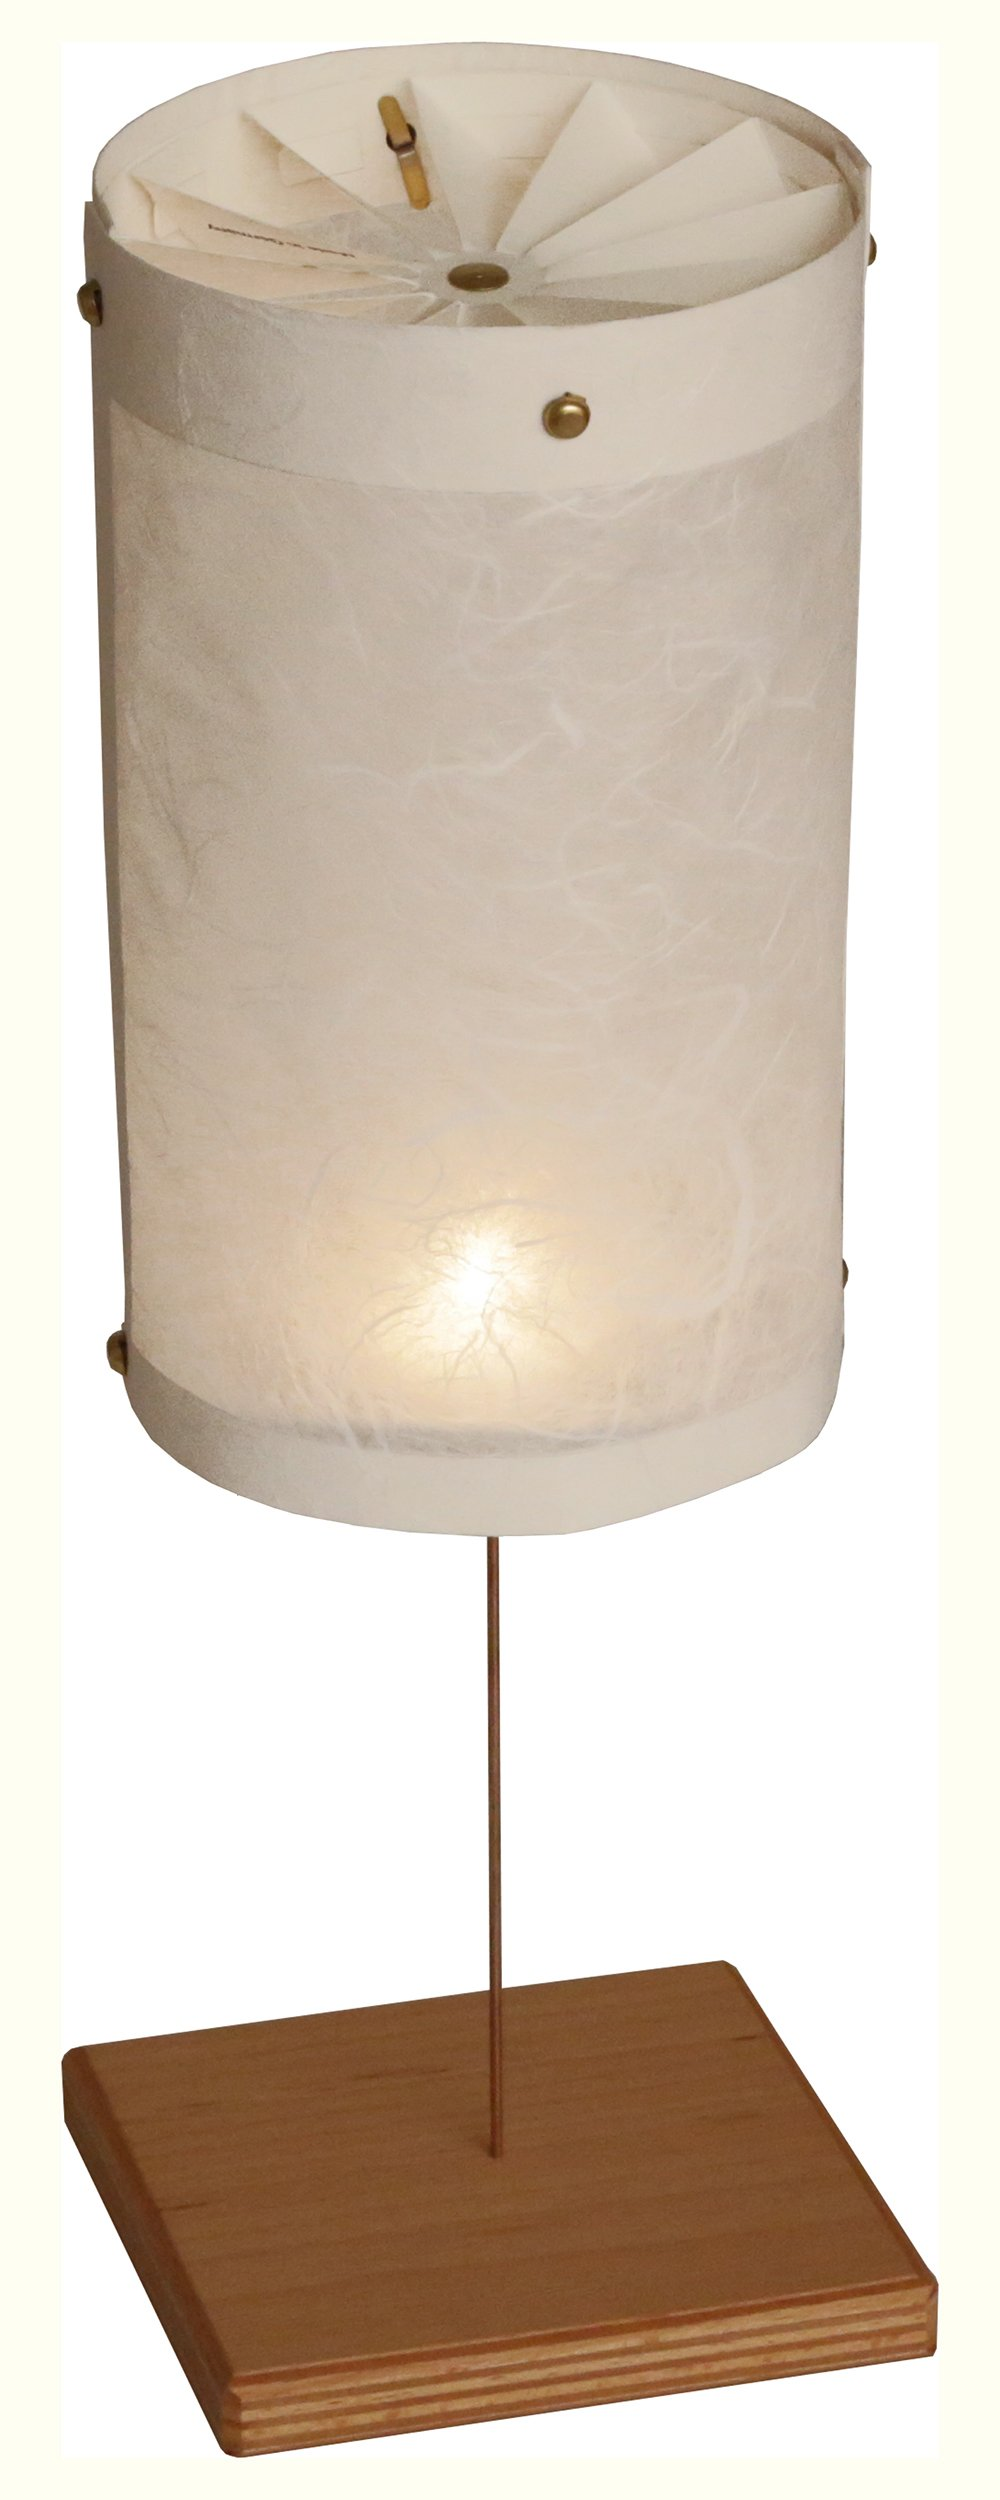 Kraul Light Rotor with Candle